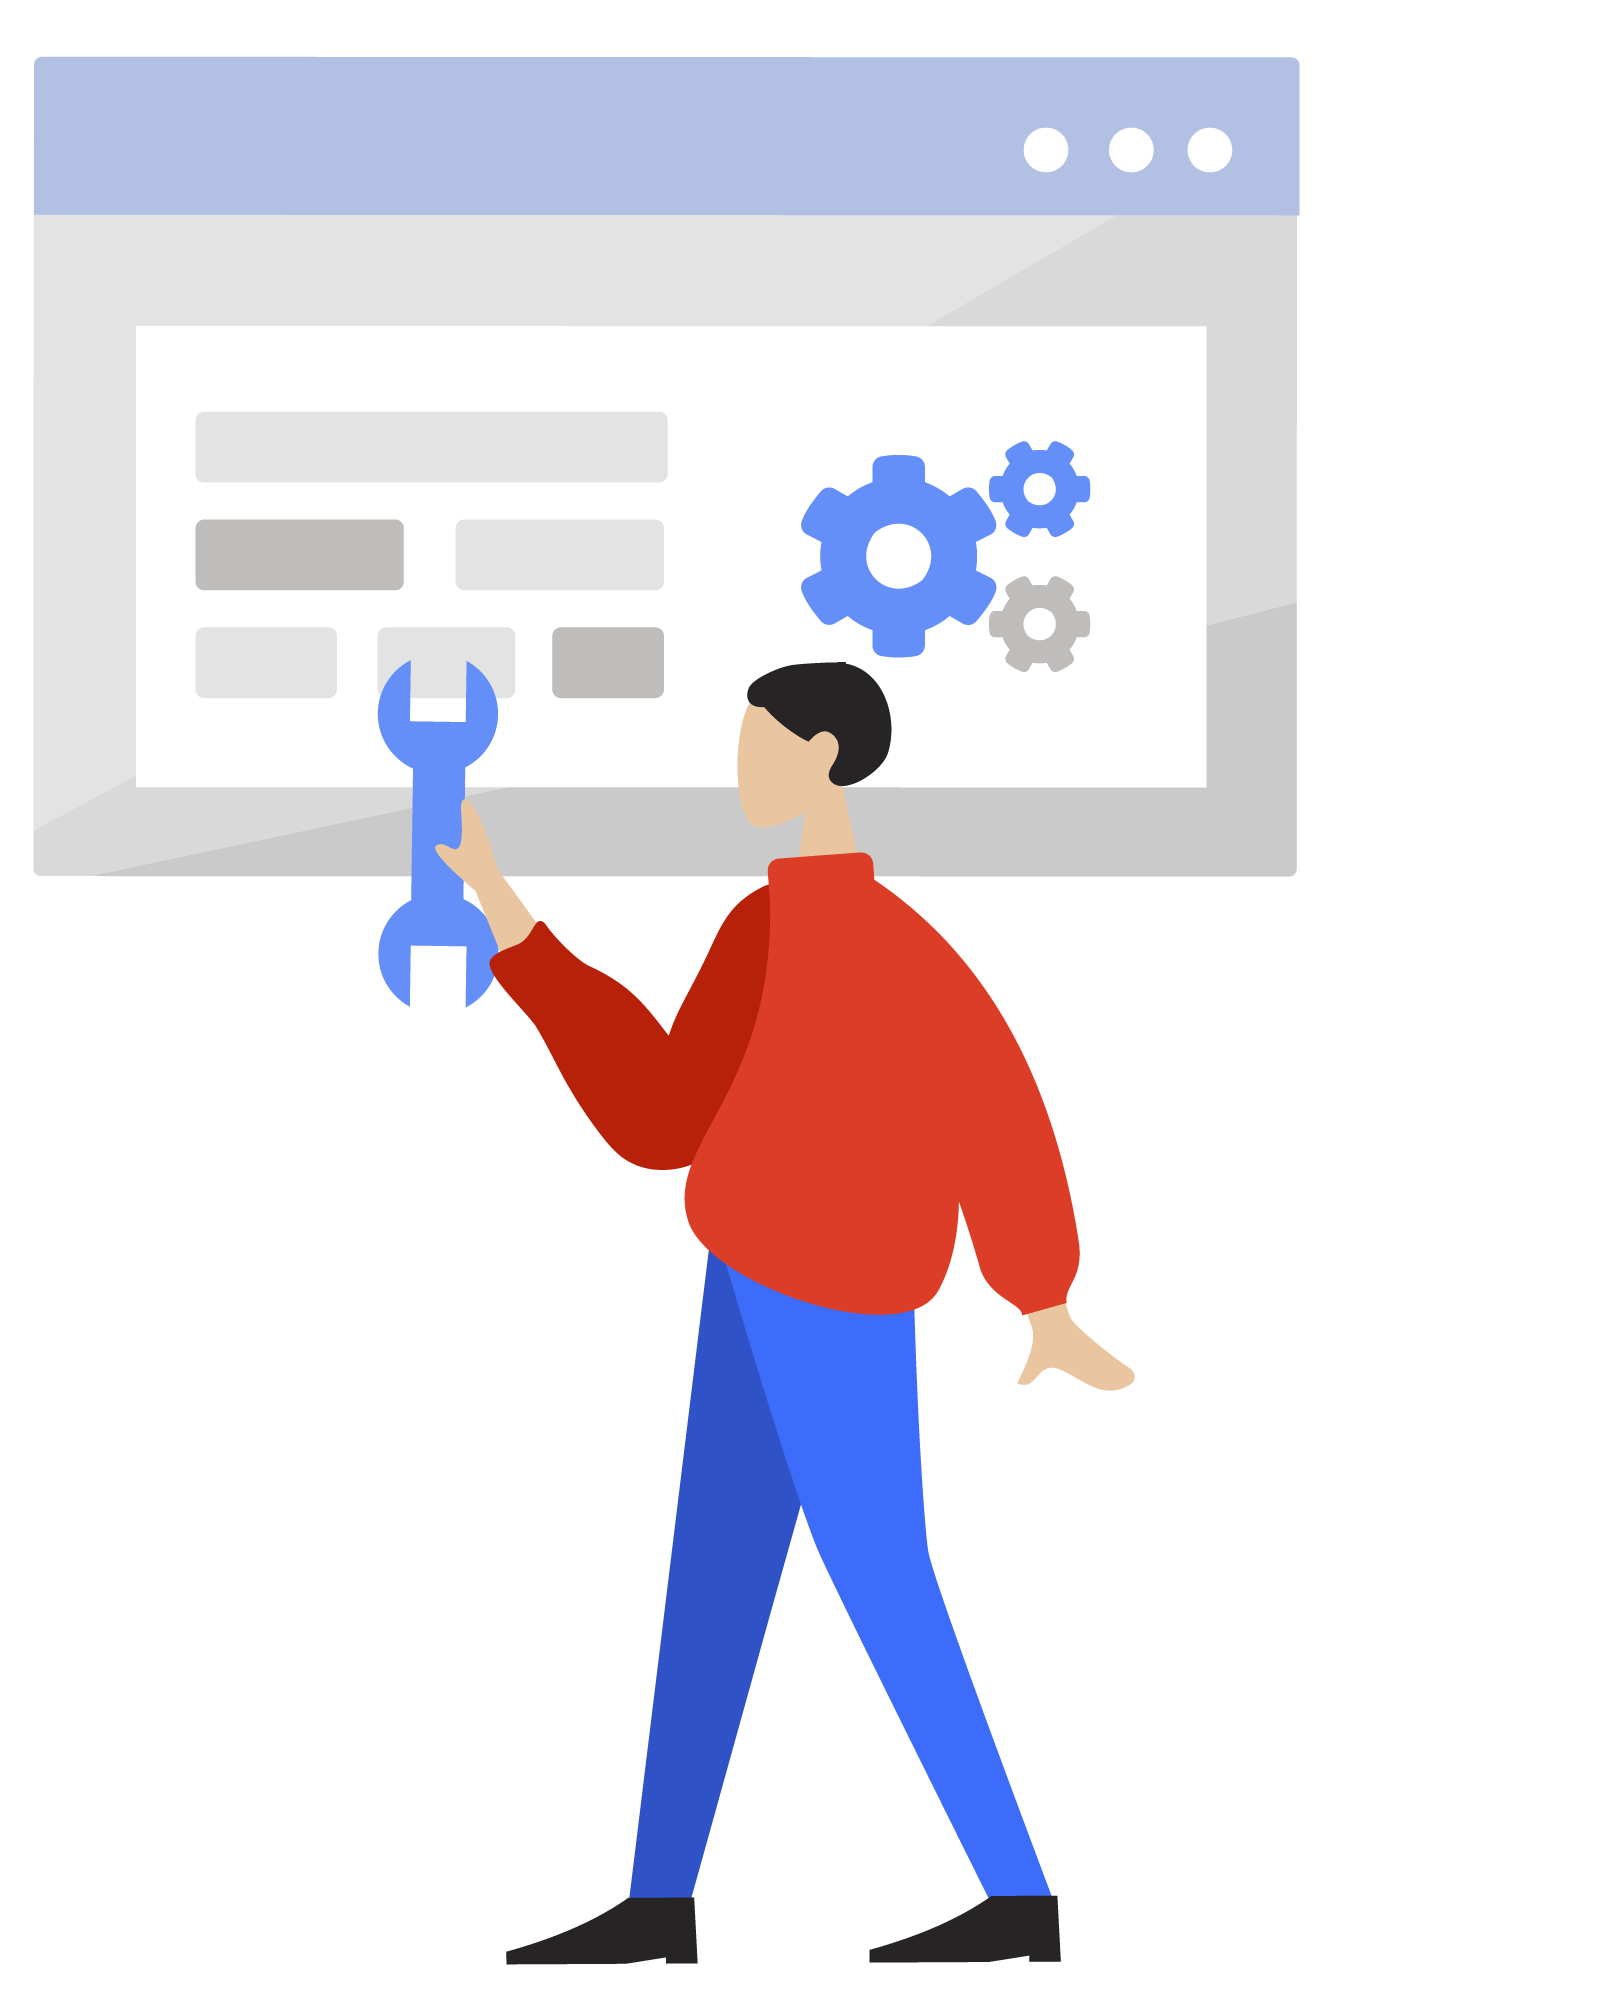 Illustration of a ServiceRocket worker providing online training services to help customers improve their business performance.